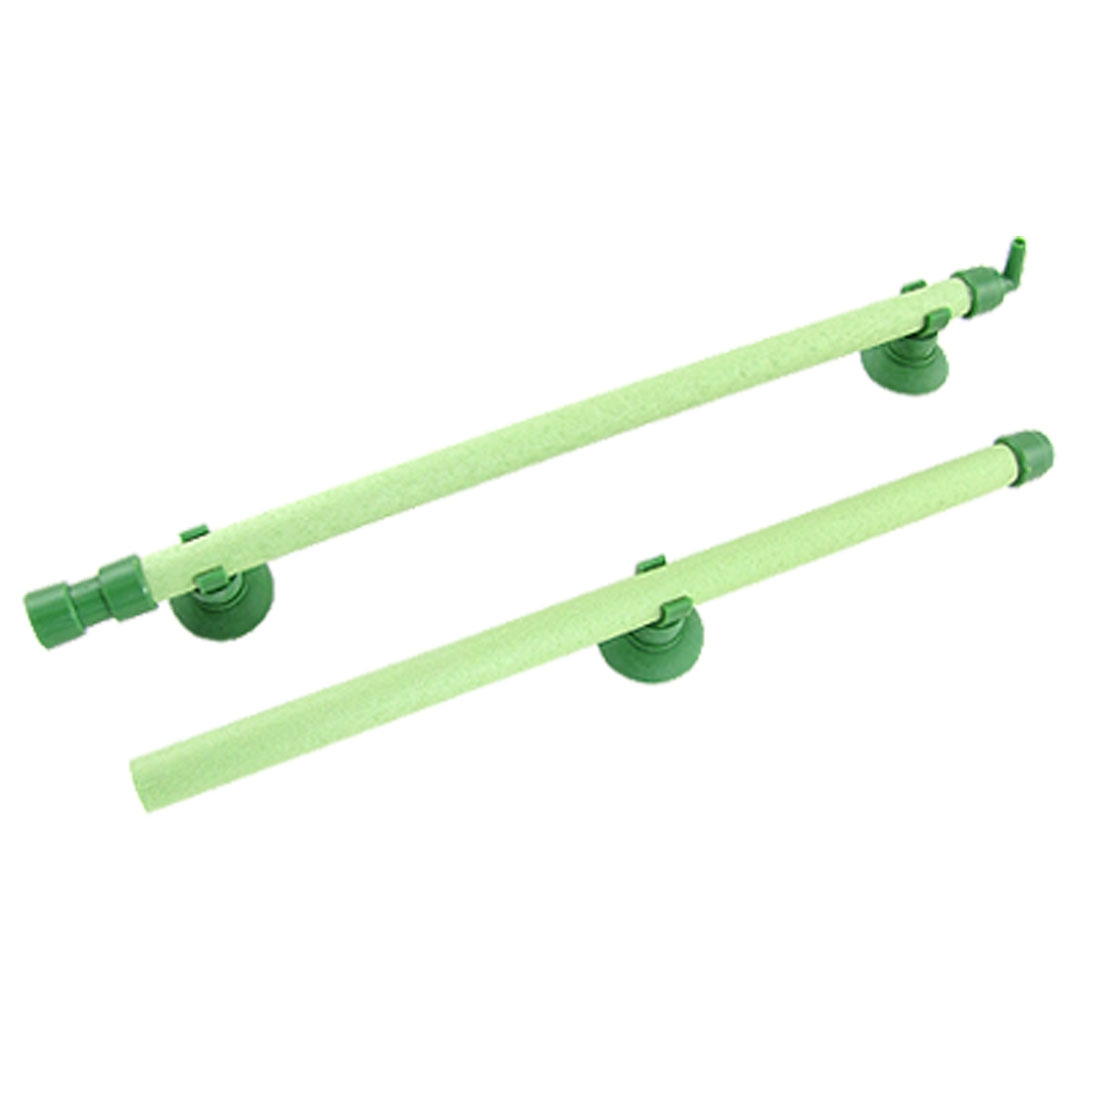 "18"" Green Aeration Tube Airstone Bubble Wall for Fish Tank Aquarium"